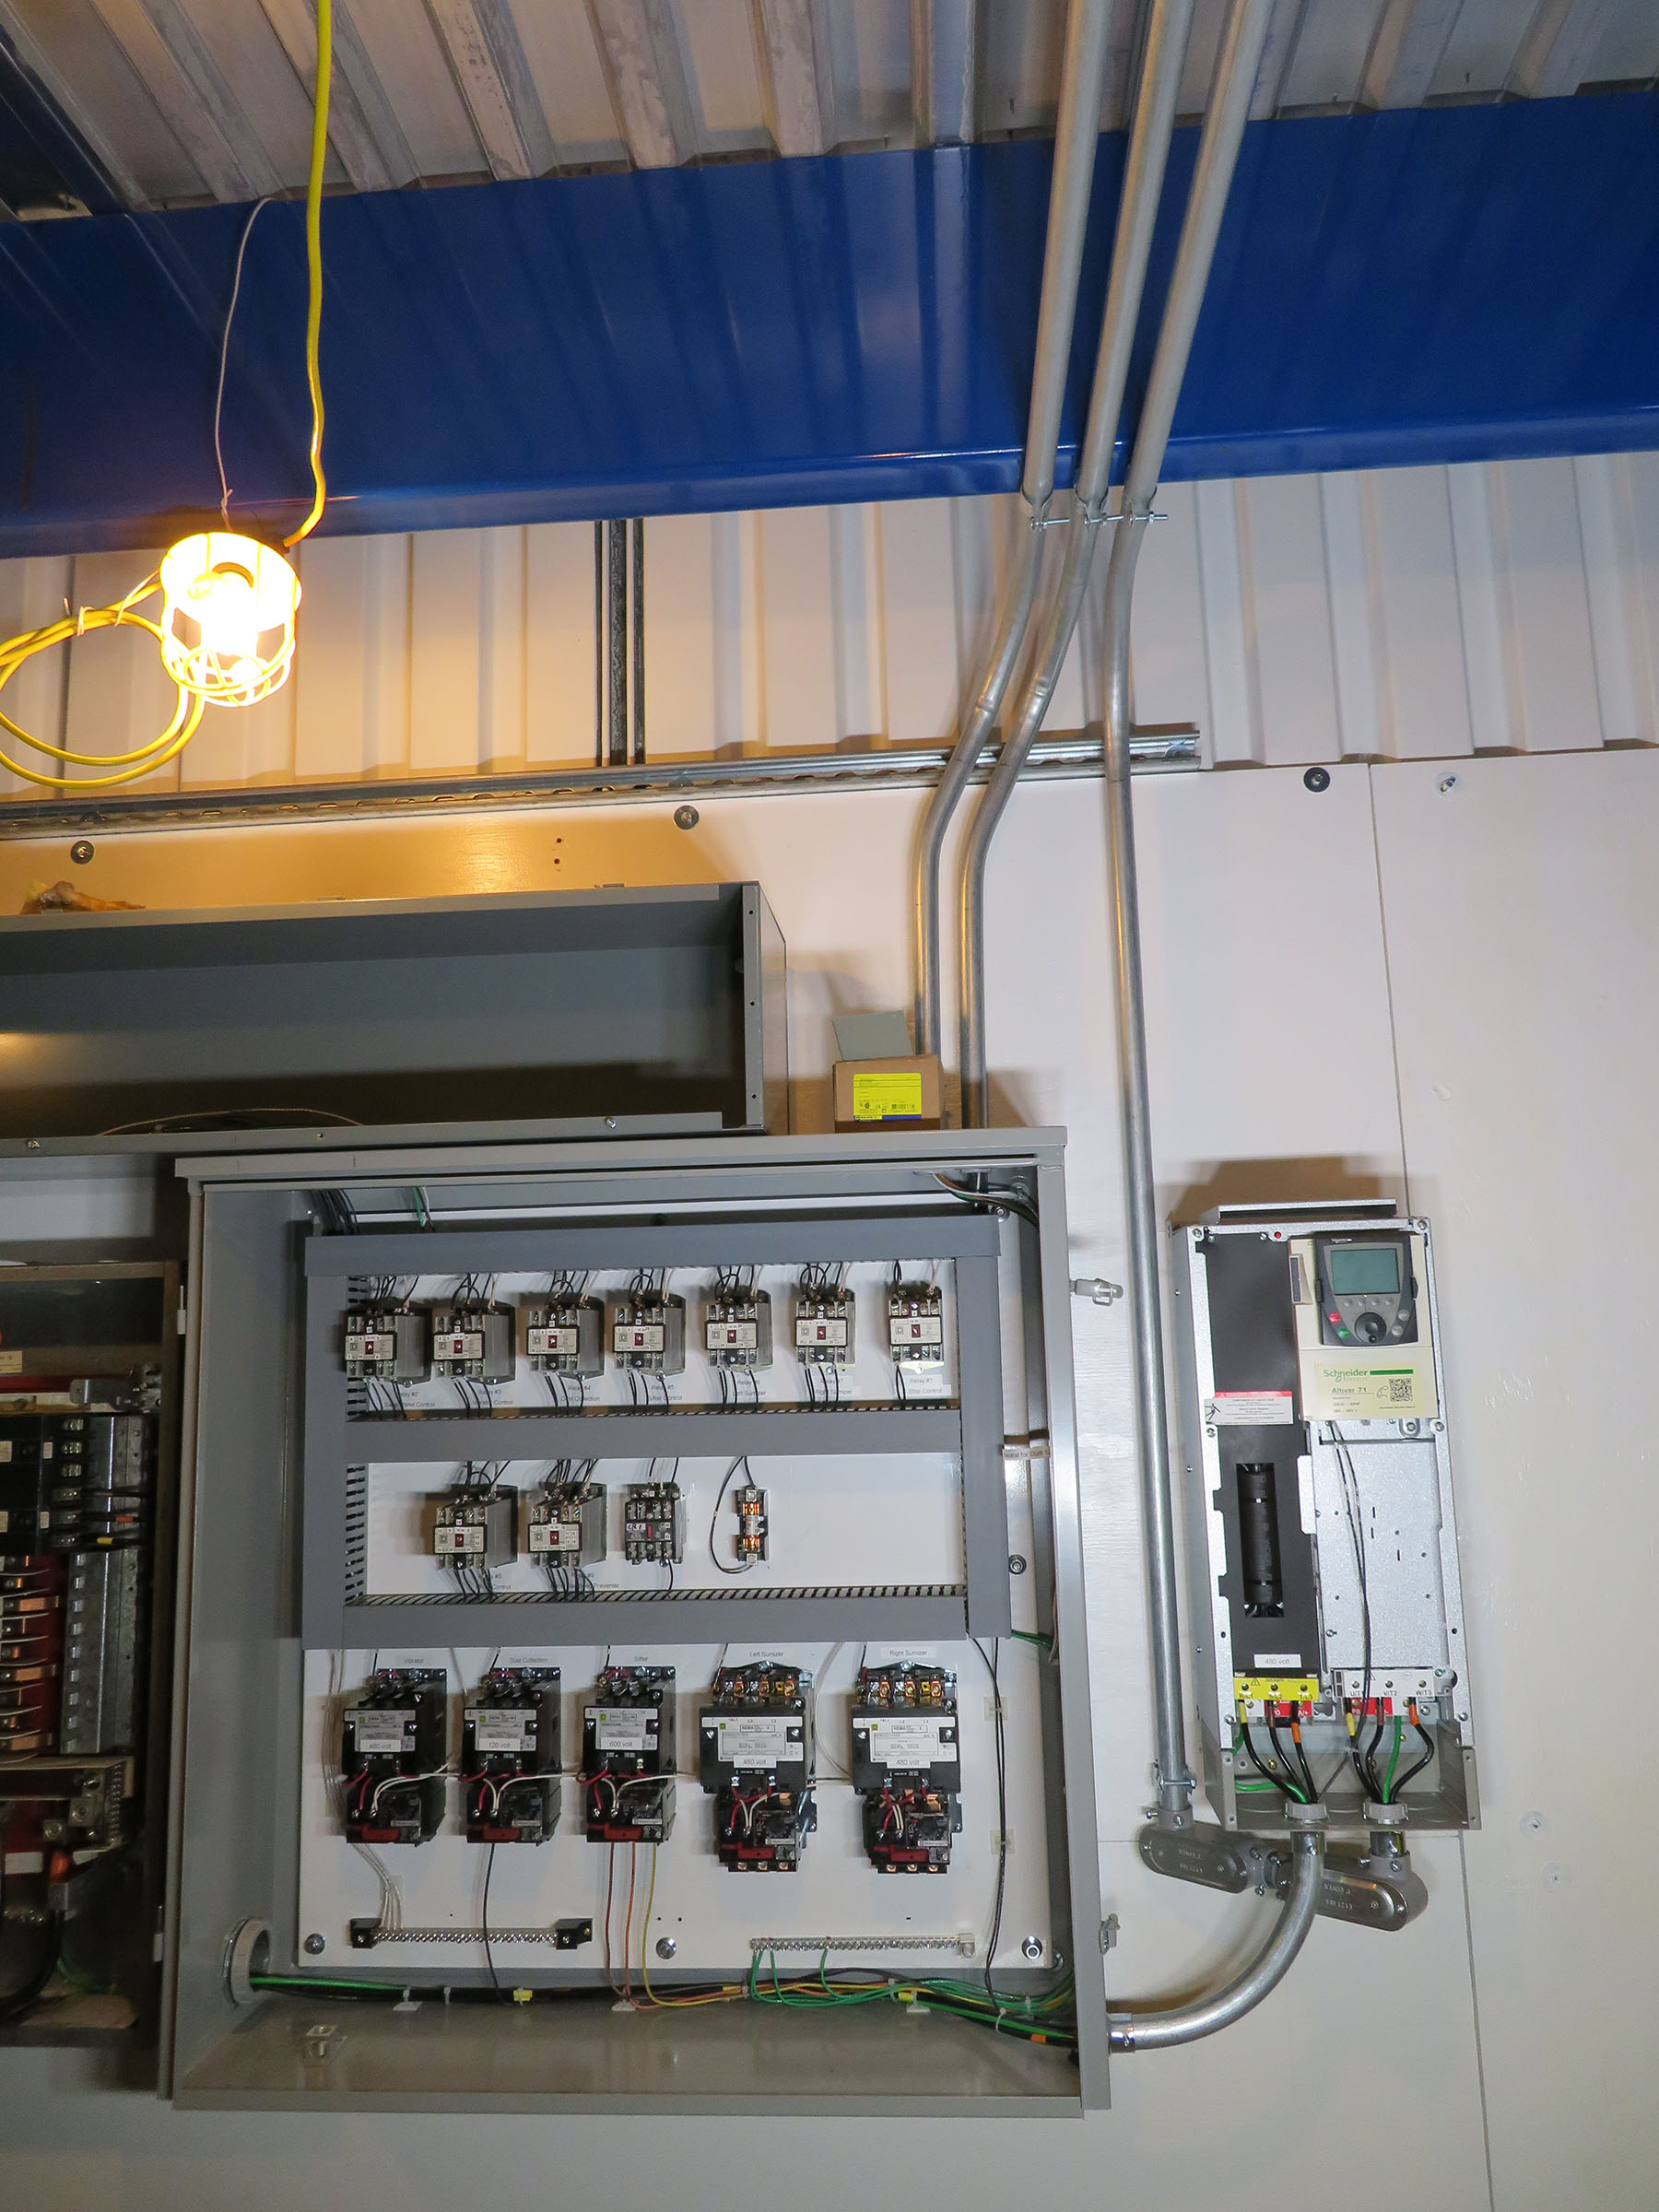 Eric Gandler Development Electric Commercial Electrician Albany Saratoga Springs Clifton Park NY